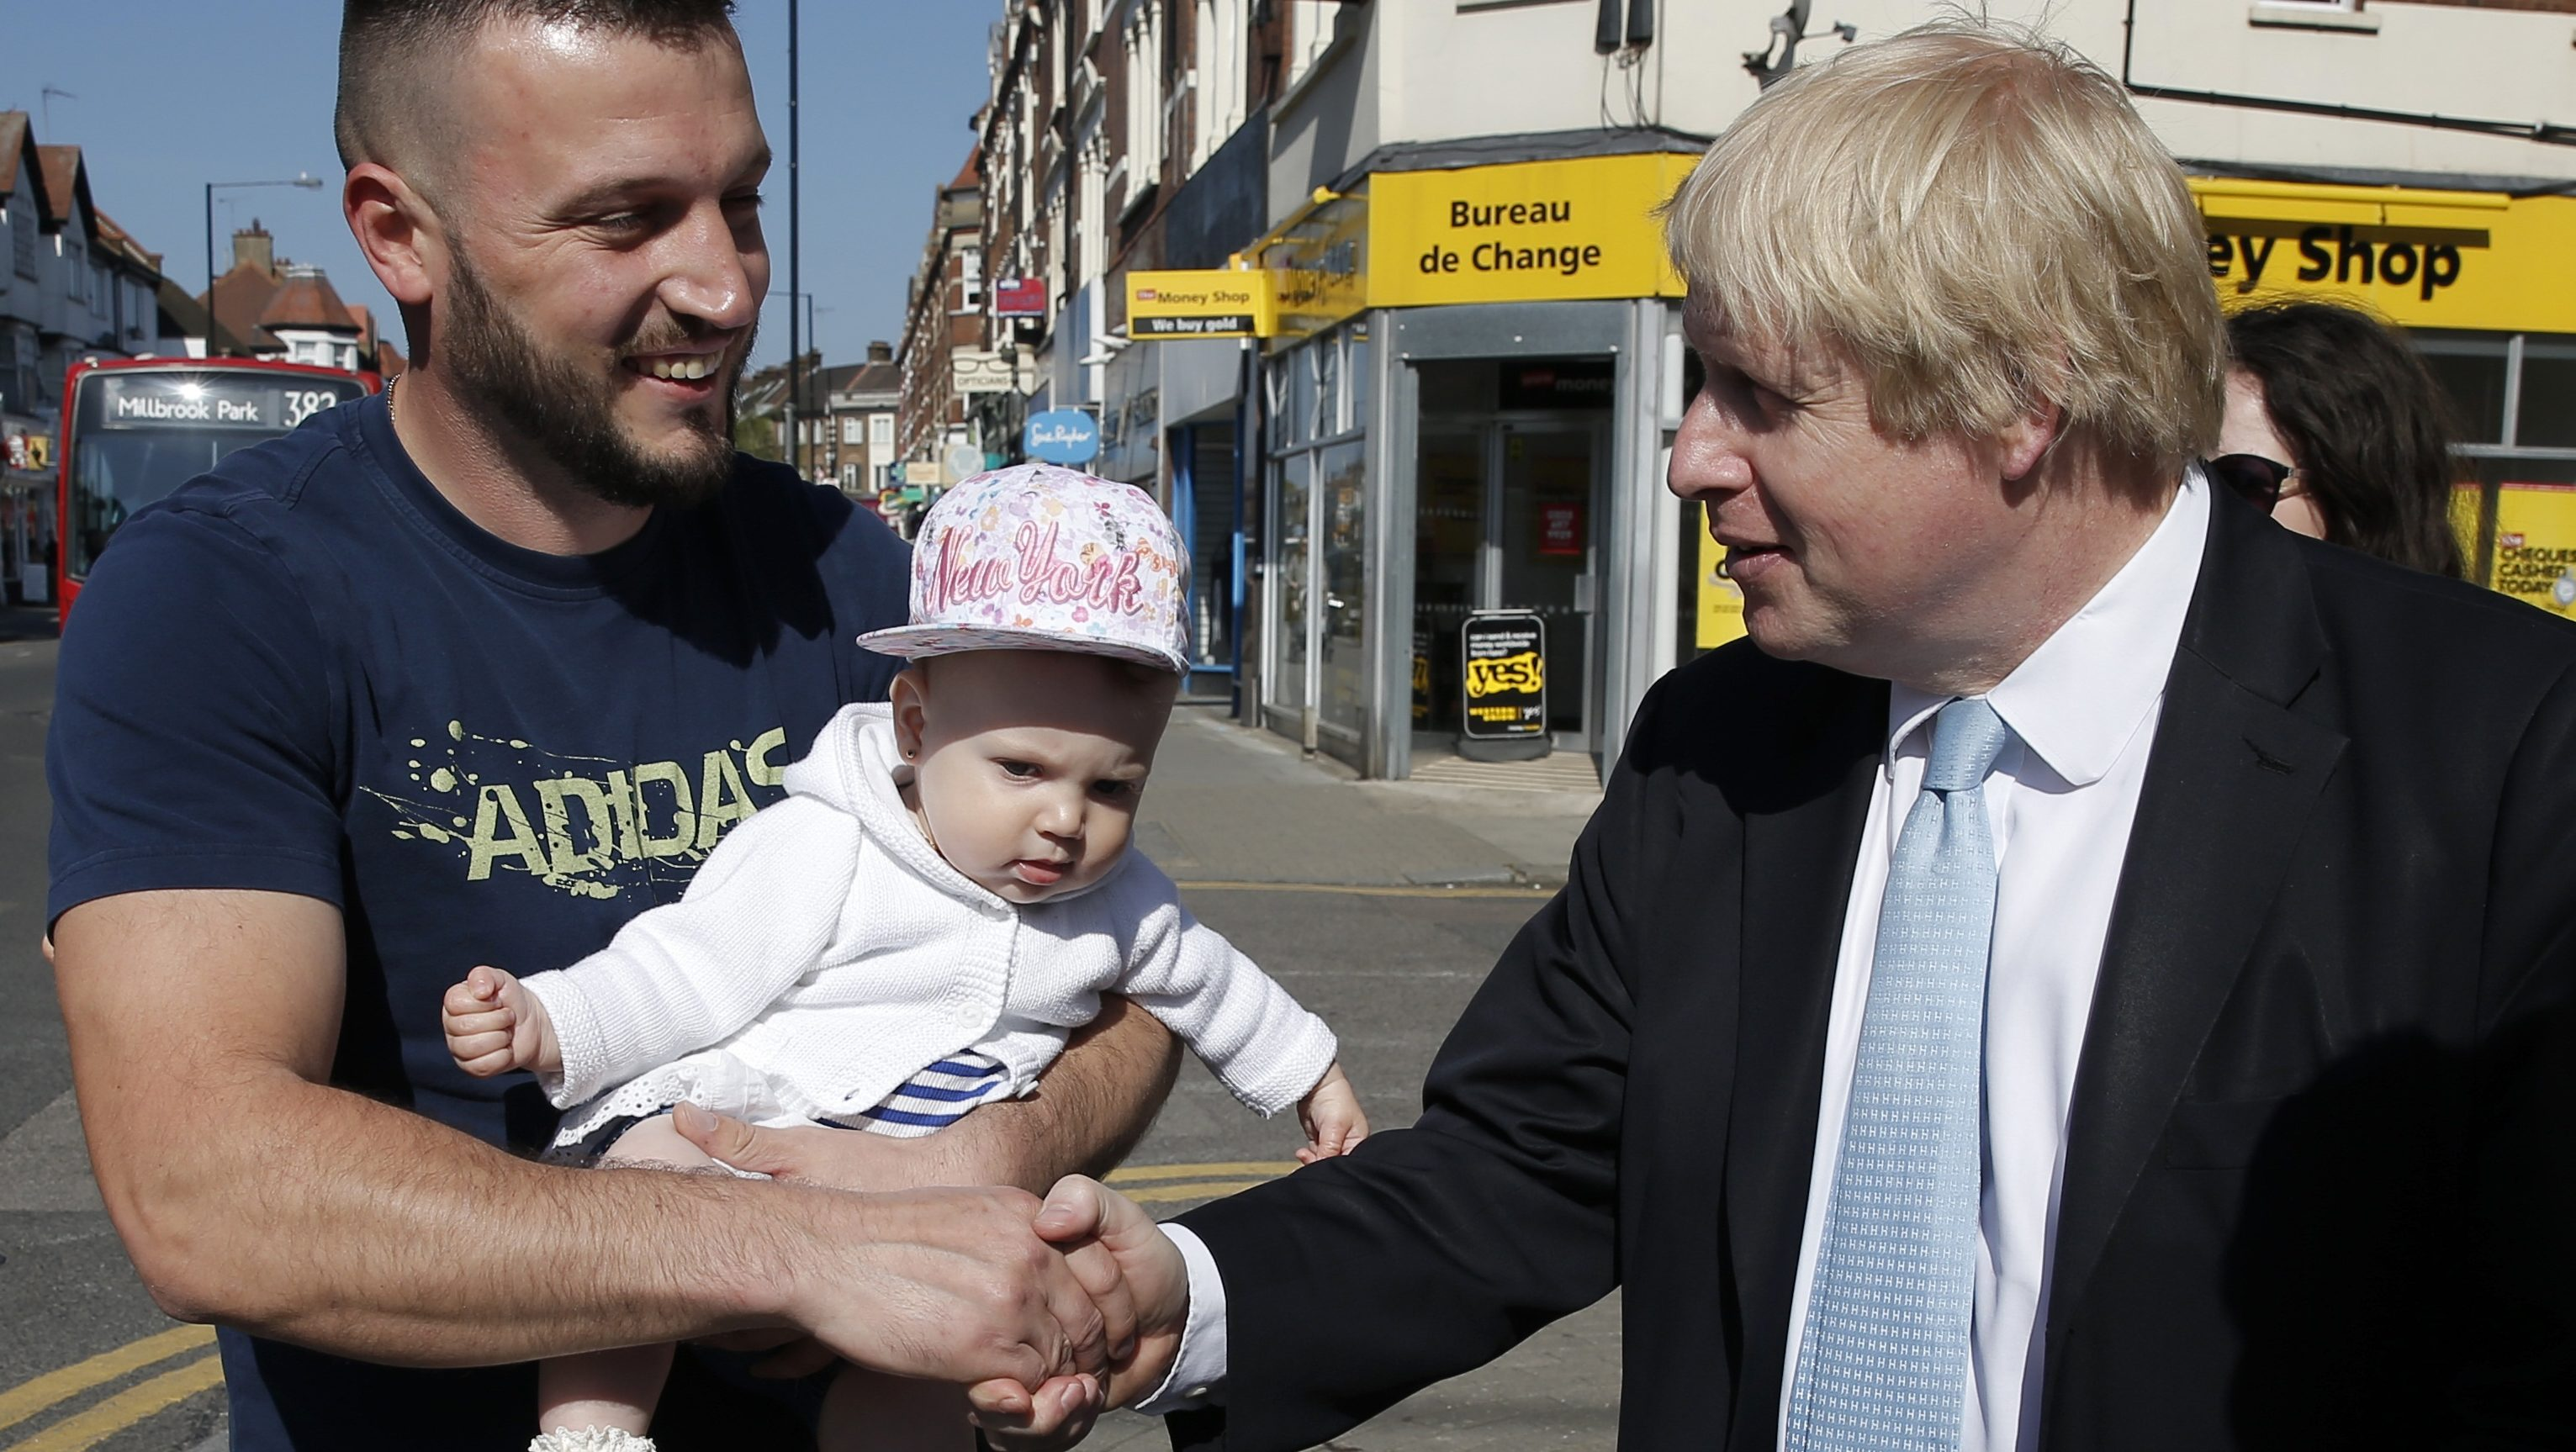 London's Mayor Boris Johnson greets a man with a baby whilst campaigning for the local Conservative candidate in Finchley, north London, April 21, 2015.